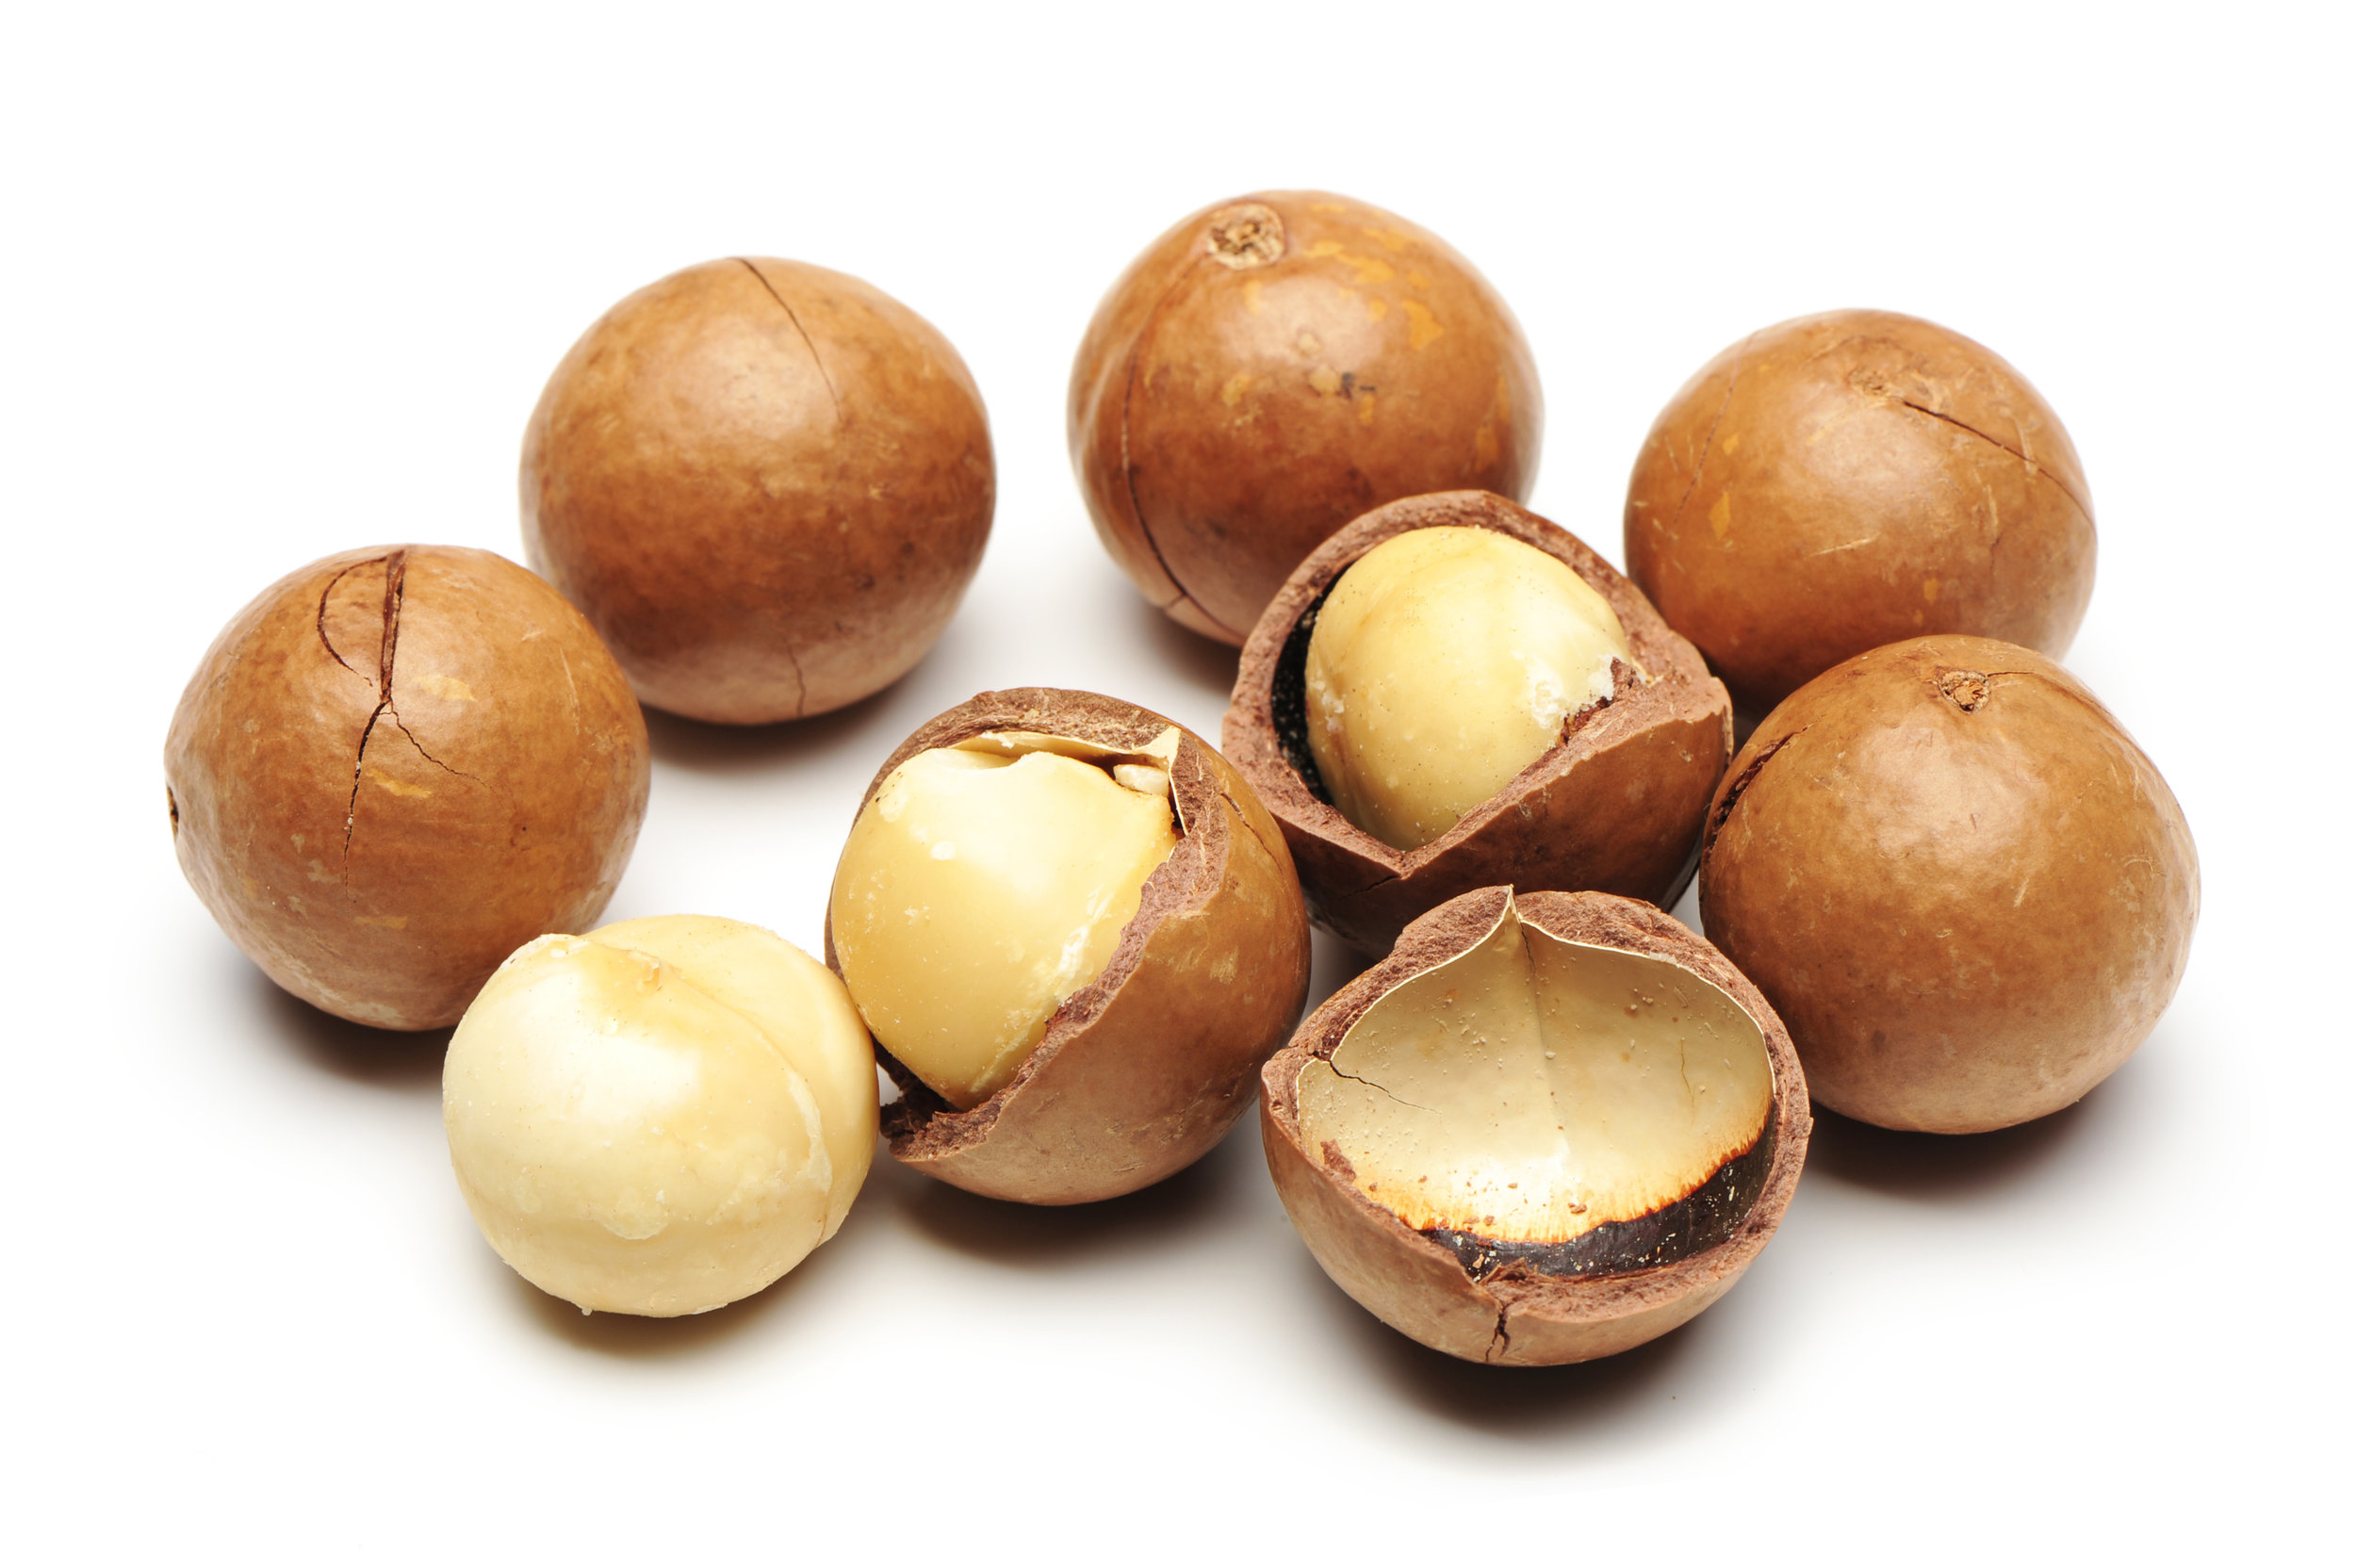 Newsha_Macadamia Nuts copy 2.jpg